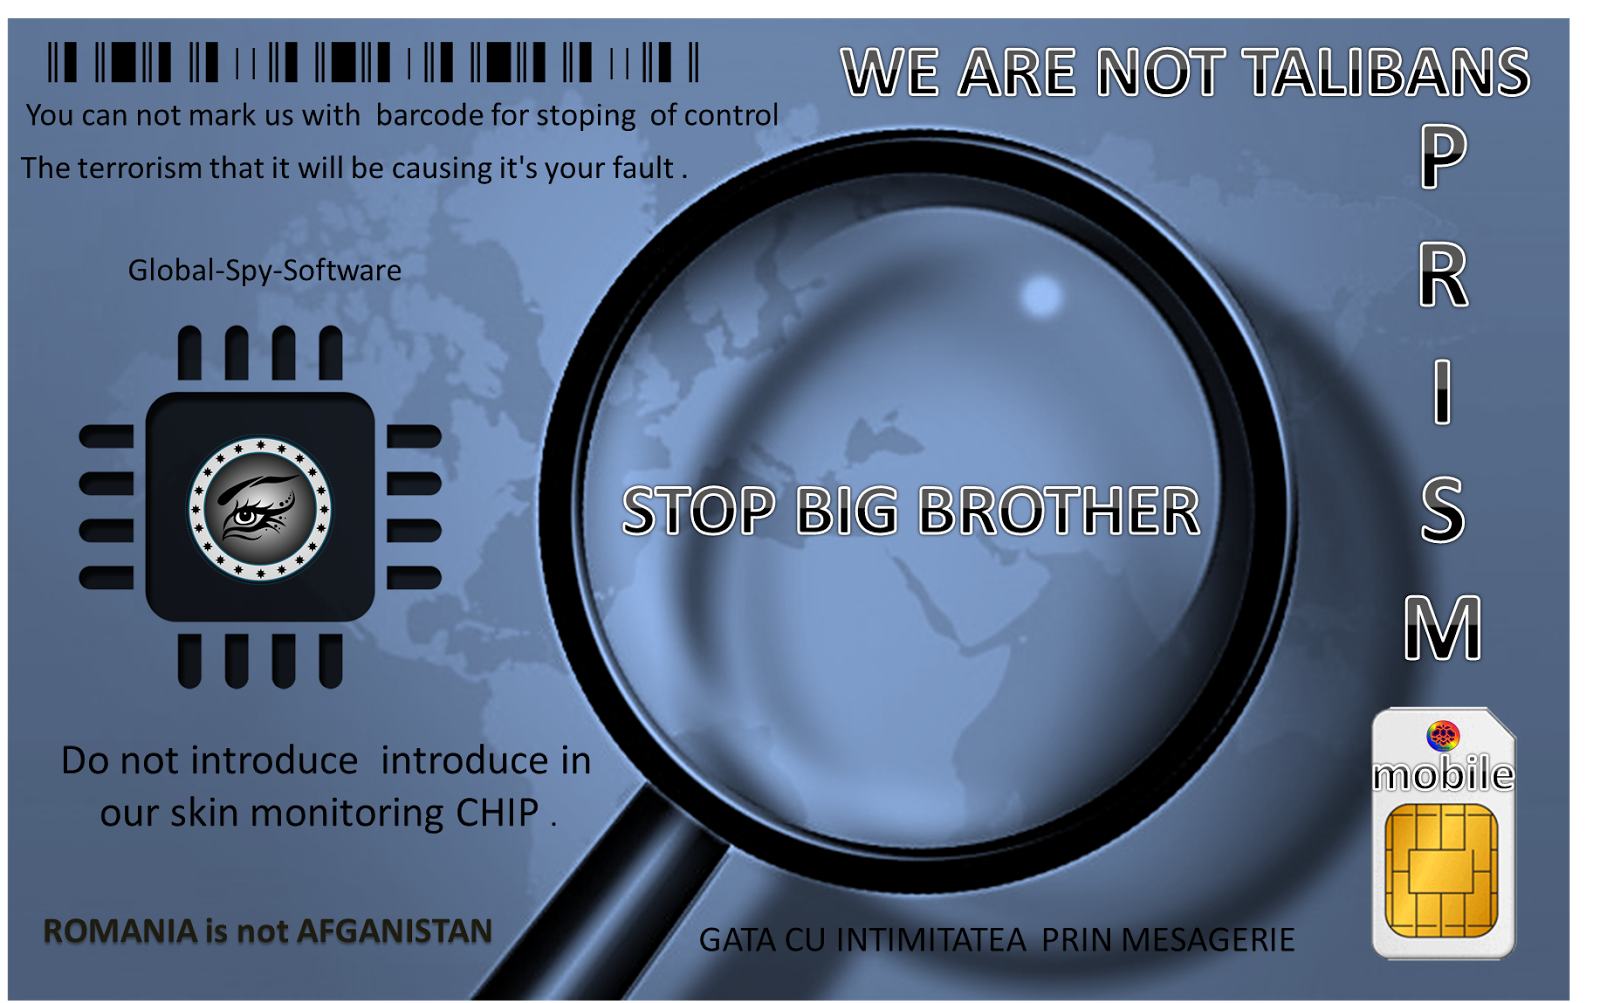 CAMPANIA ANTI BIG BROTHER